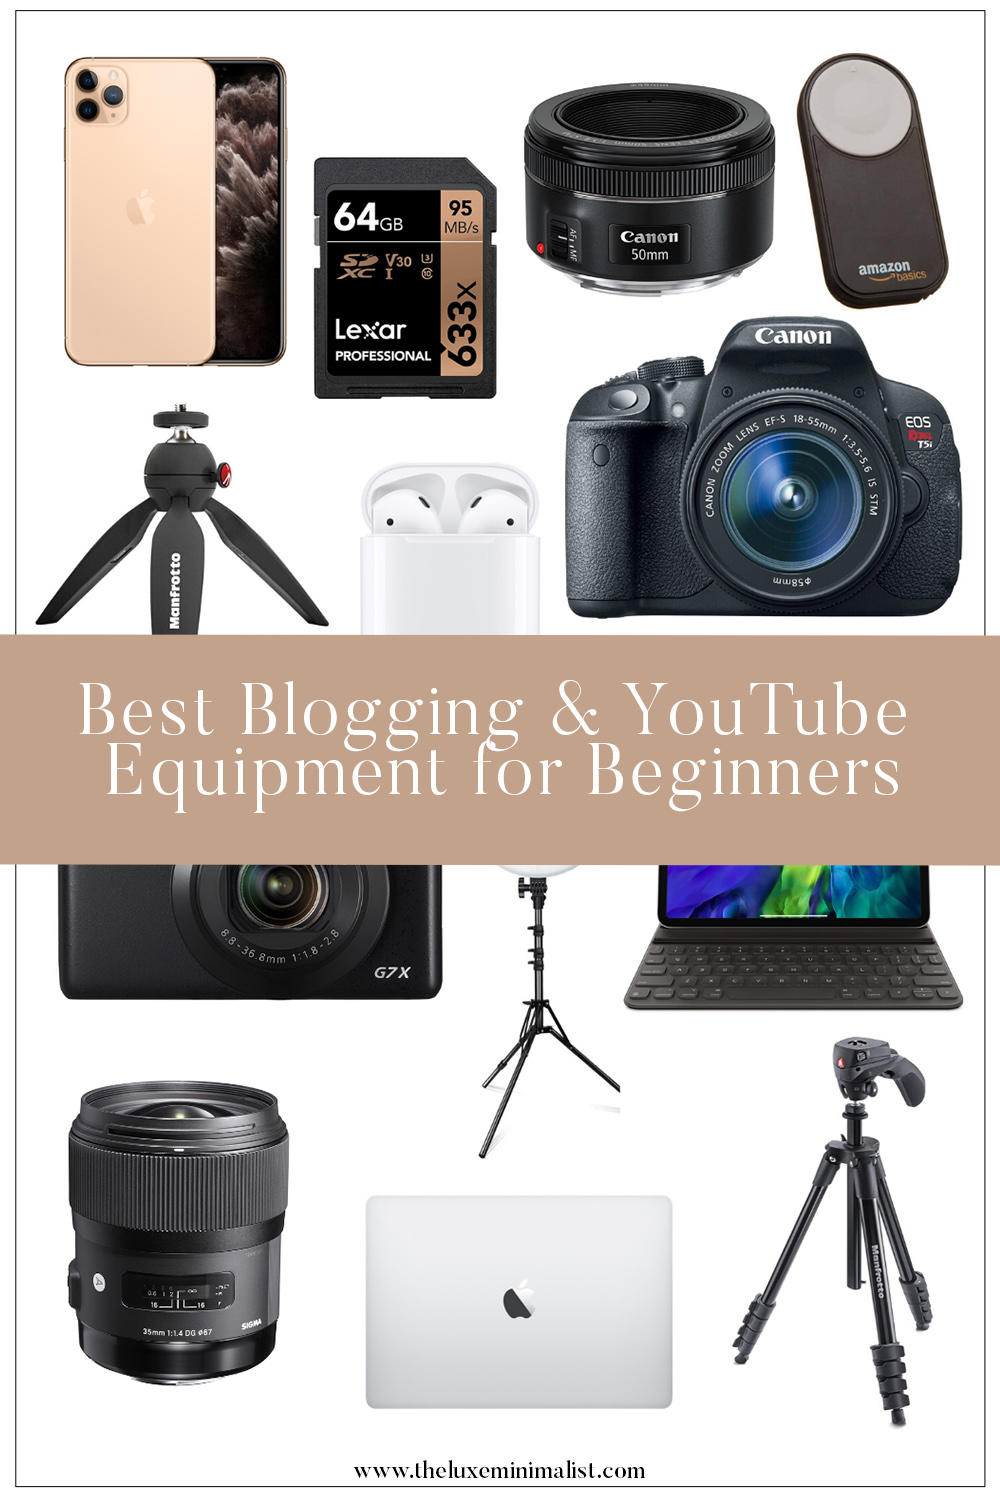 Best Blogging & YouTube Equipment for Beginners